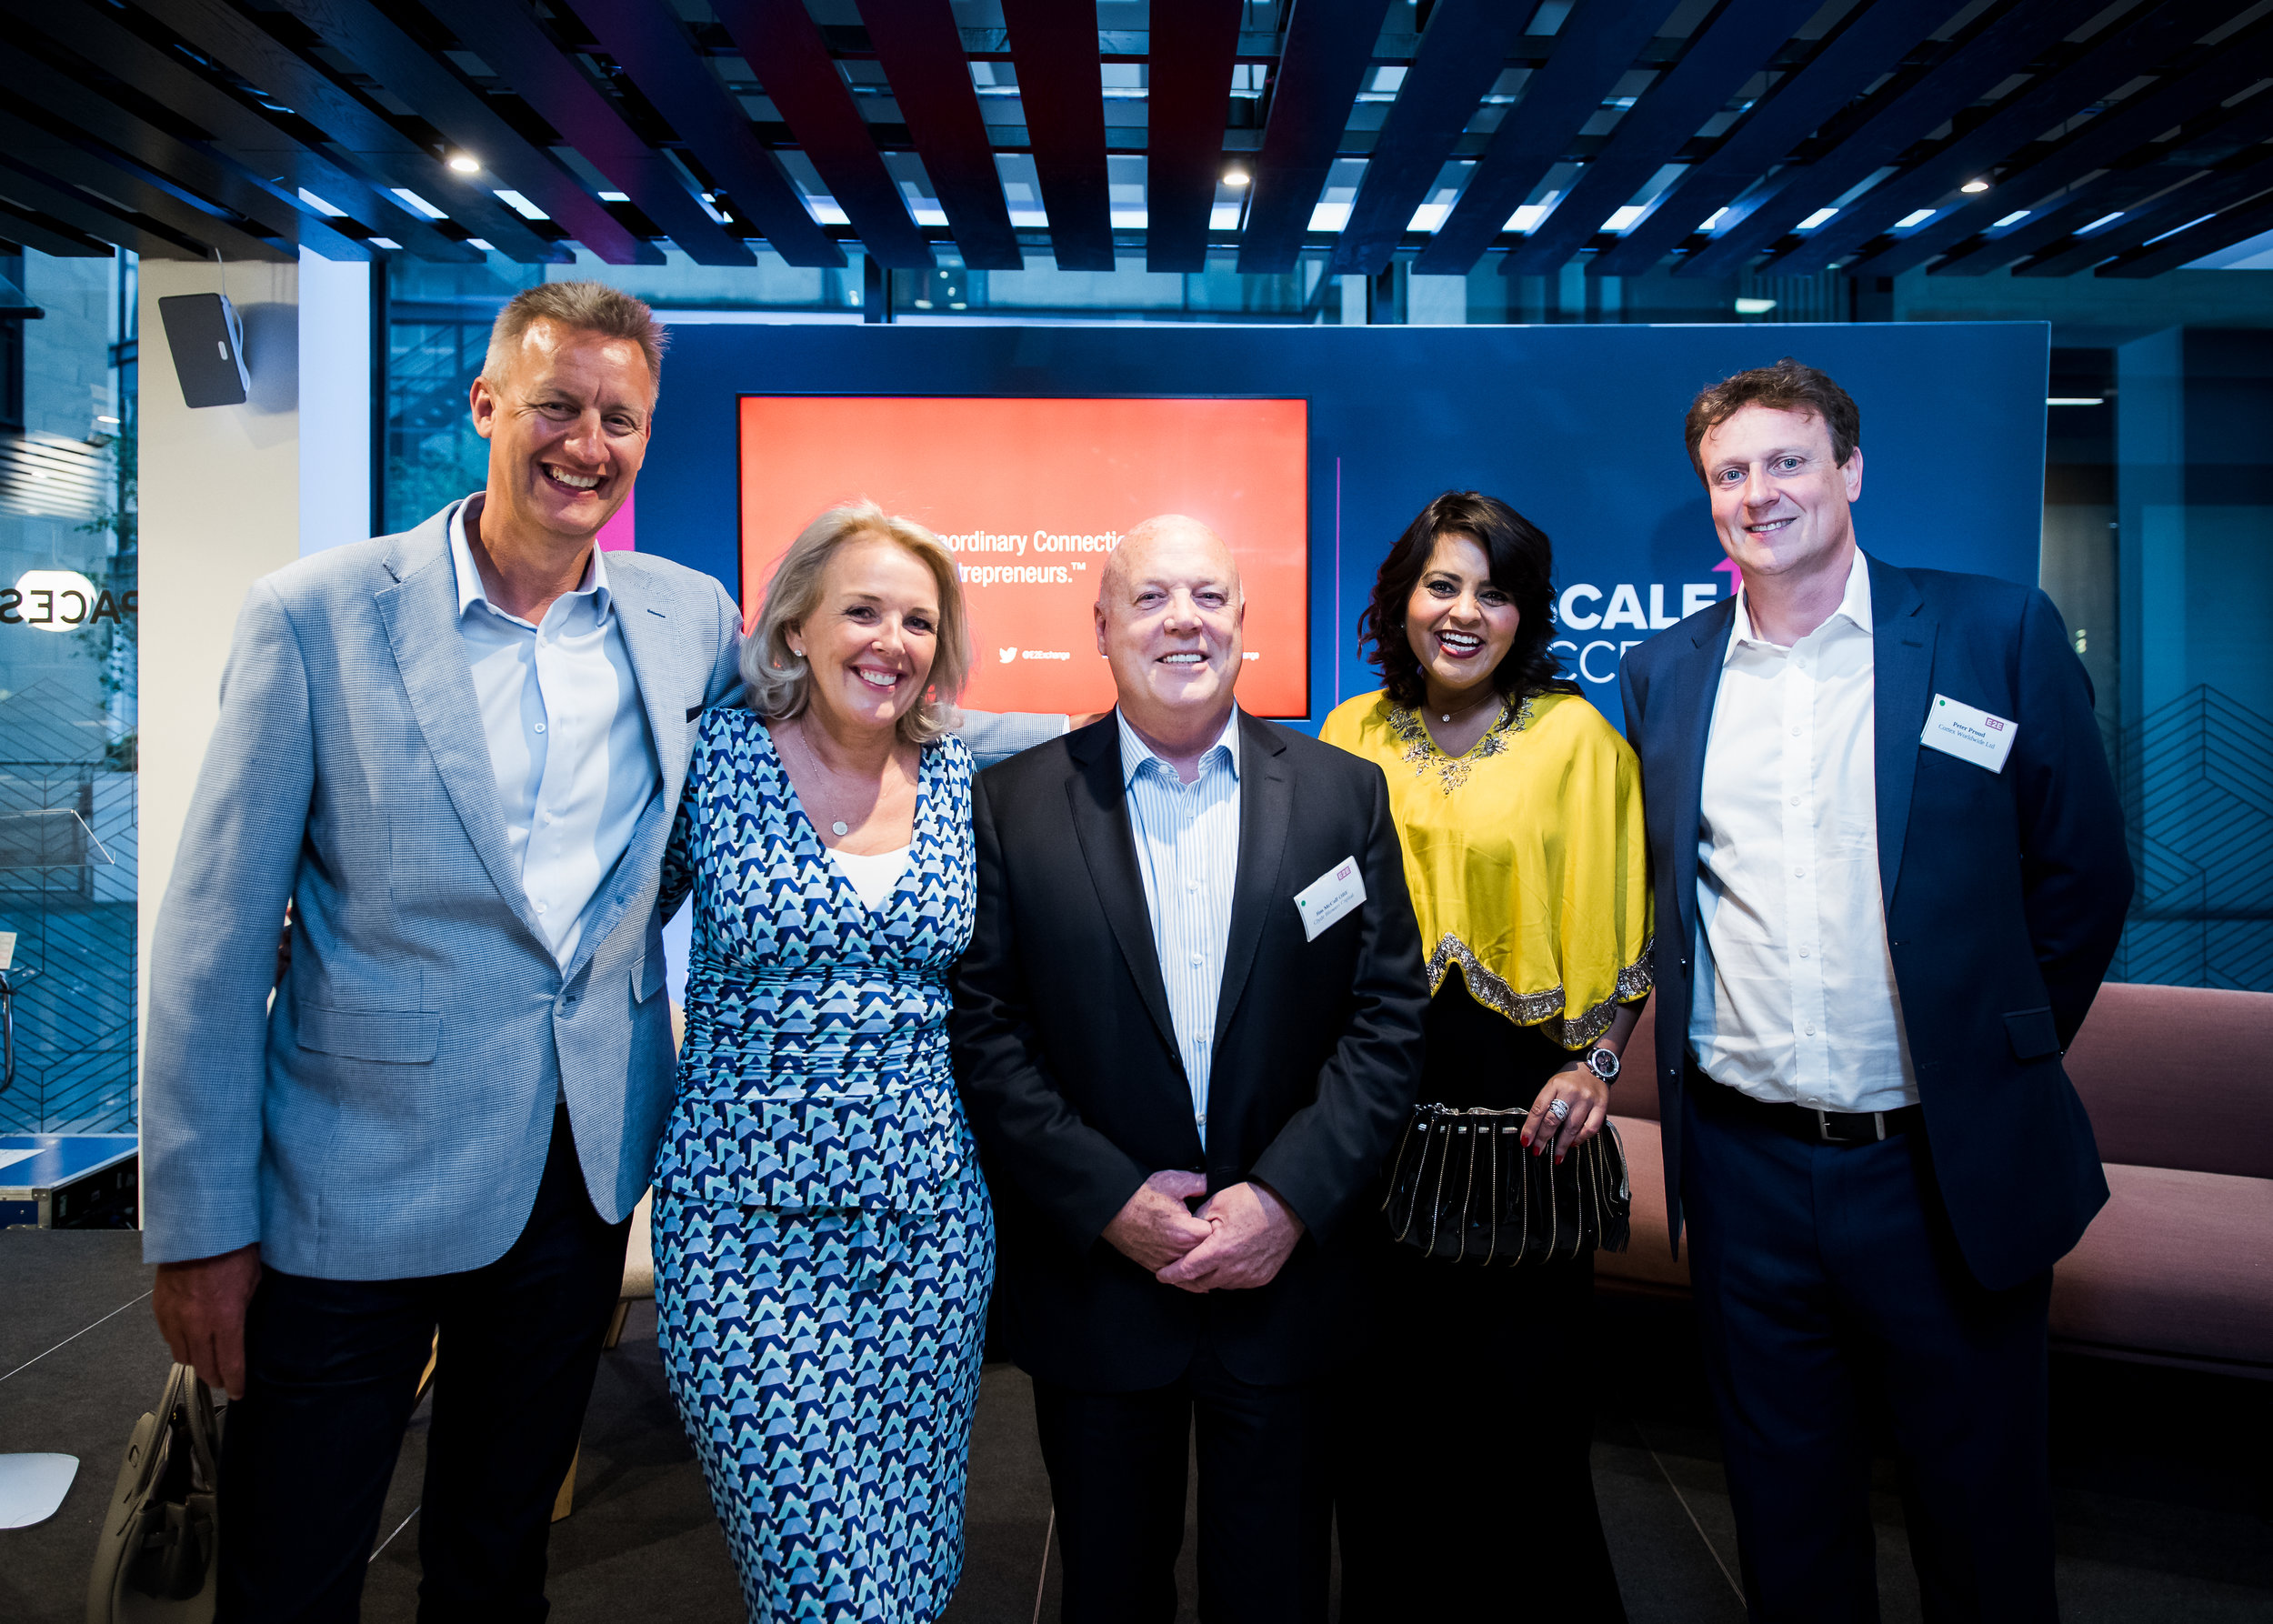 #ScaleUp2Success EDINBURGH speakers panel.  Left to right: Russell Dalgleish, Alison Cooper, Jim McColl OBE, Shalini Khemka, and Peter Proud